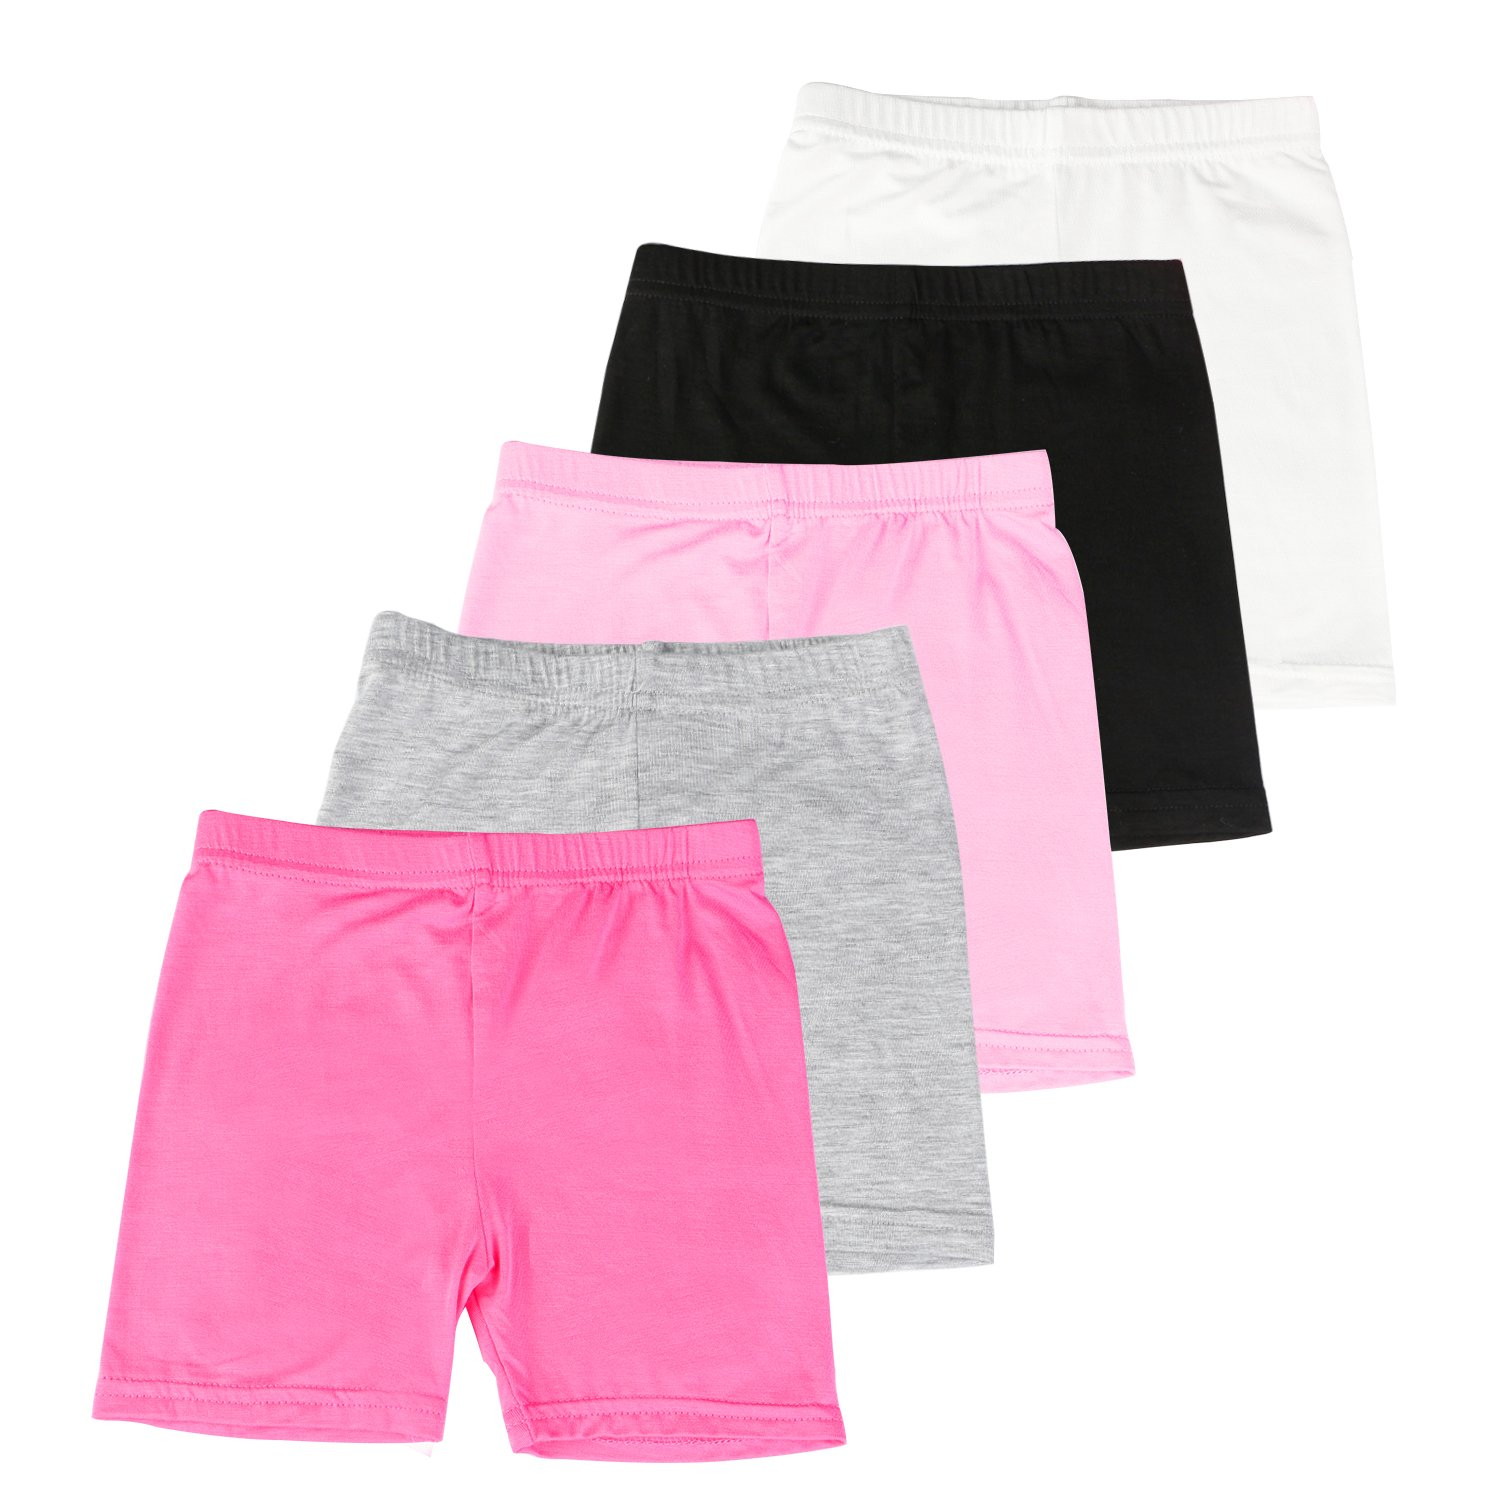 BOOPH Girls Dance Short, 5 Pack Assorted Color Bike Shorts for Girls 3-4 Year Old